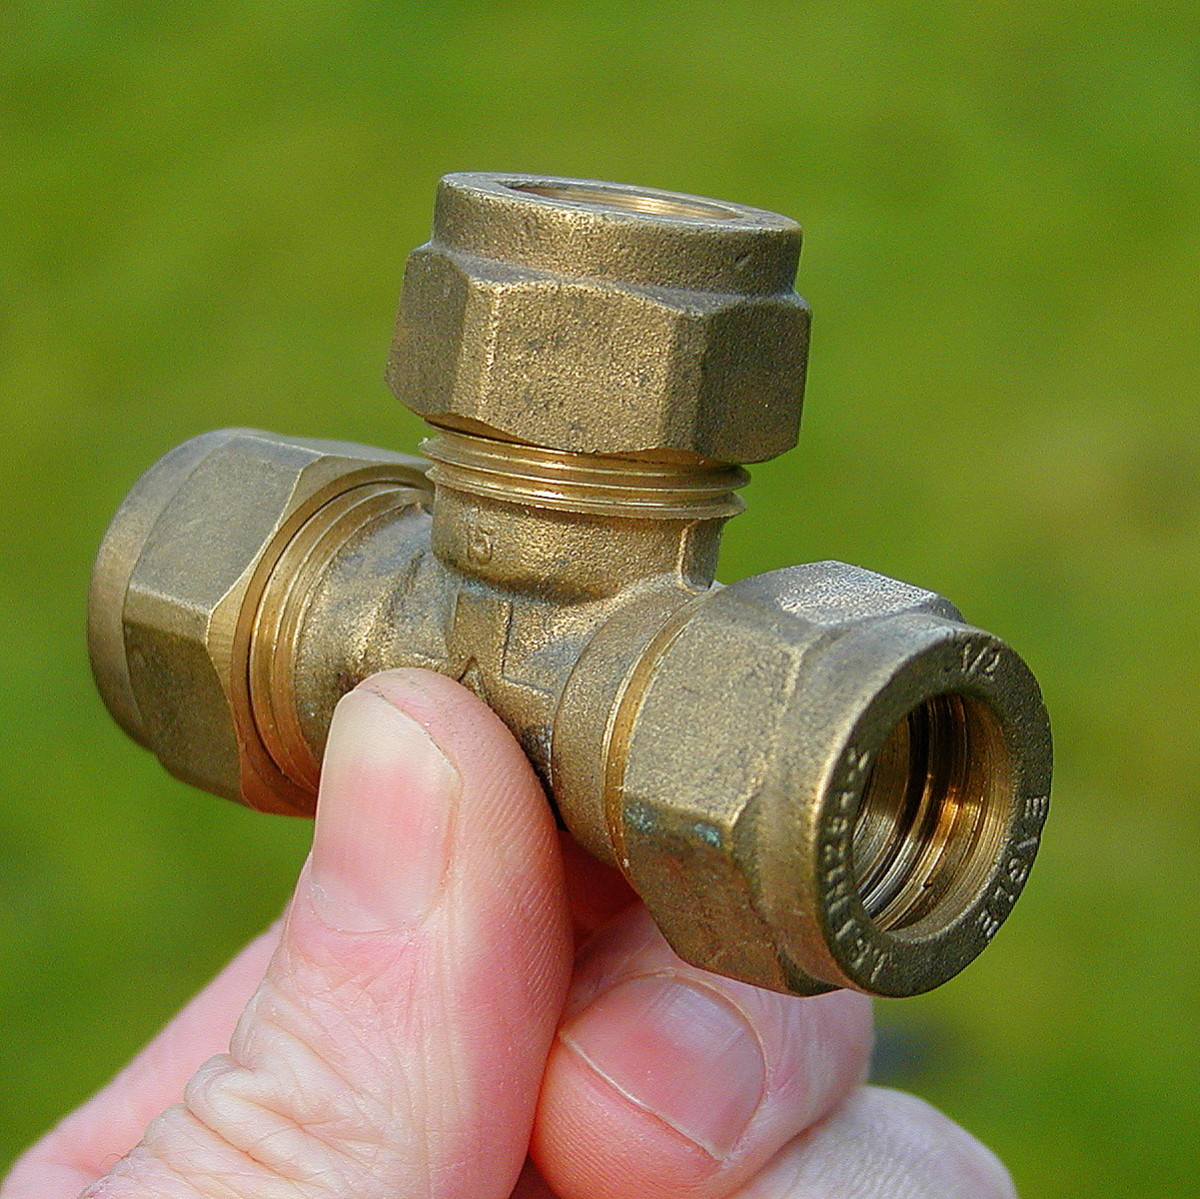 A Complete Guide to Using Plumbing Fittings for Joining PVC